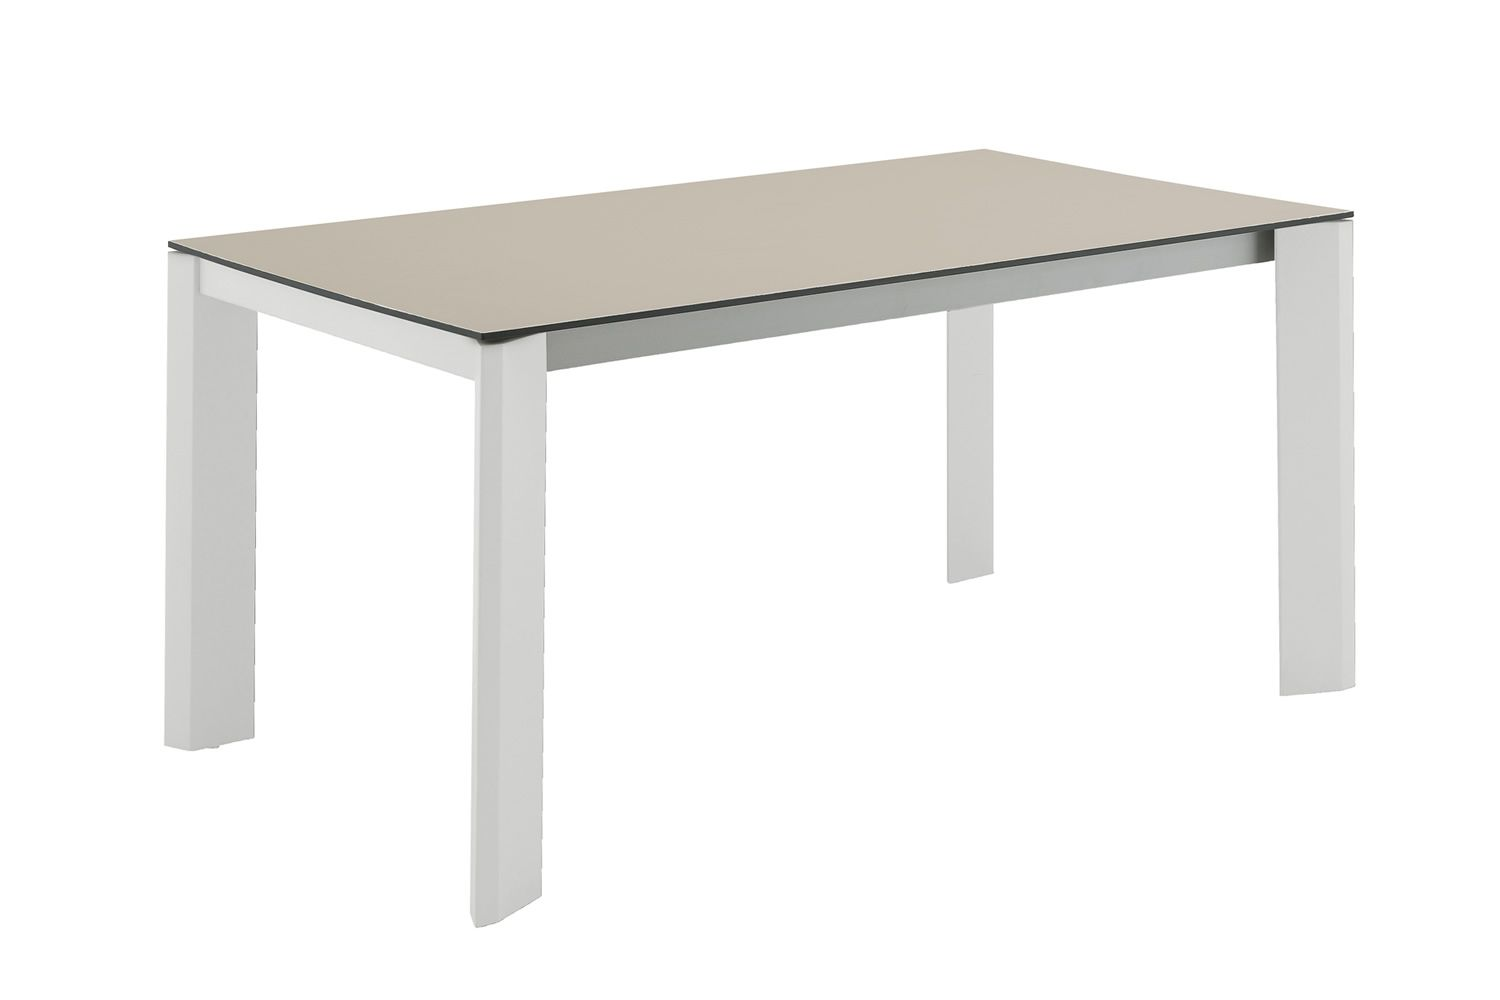 Neos 160 table domitalia en m tal plateau en verre ou for Table verre blanc extensible